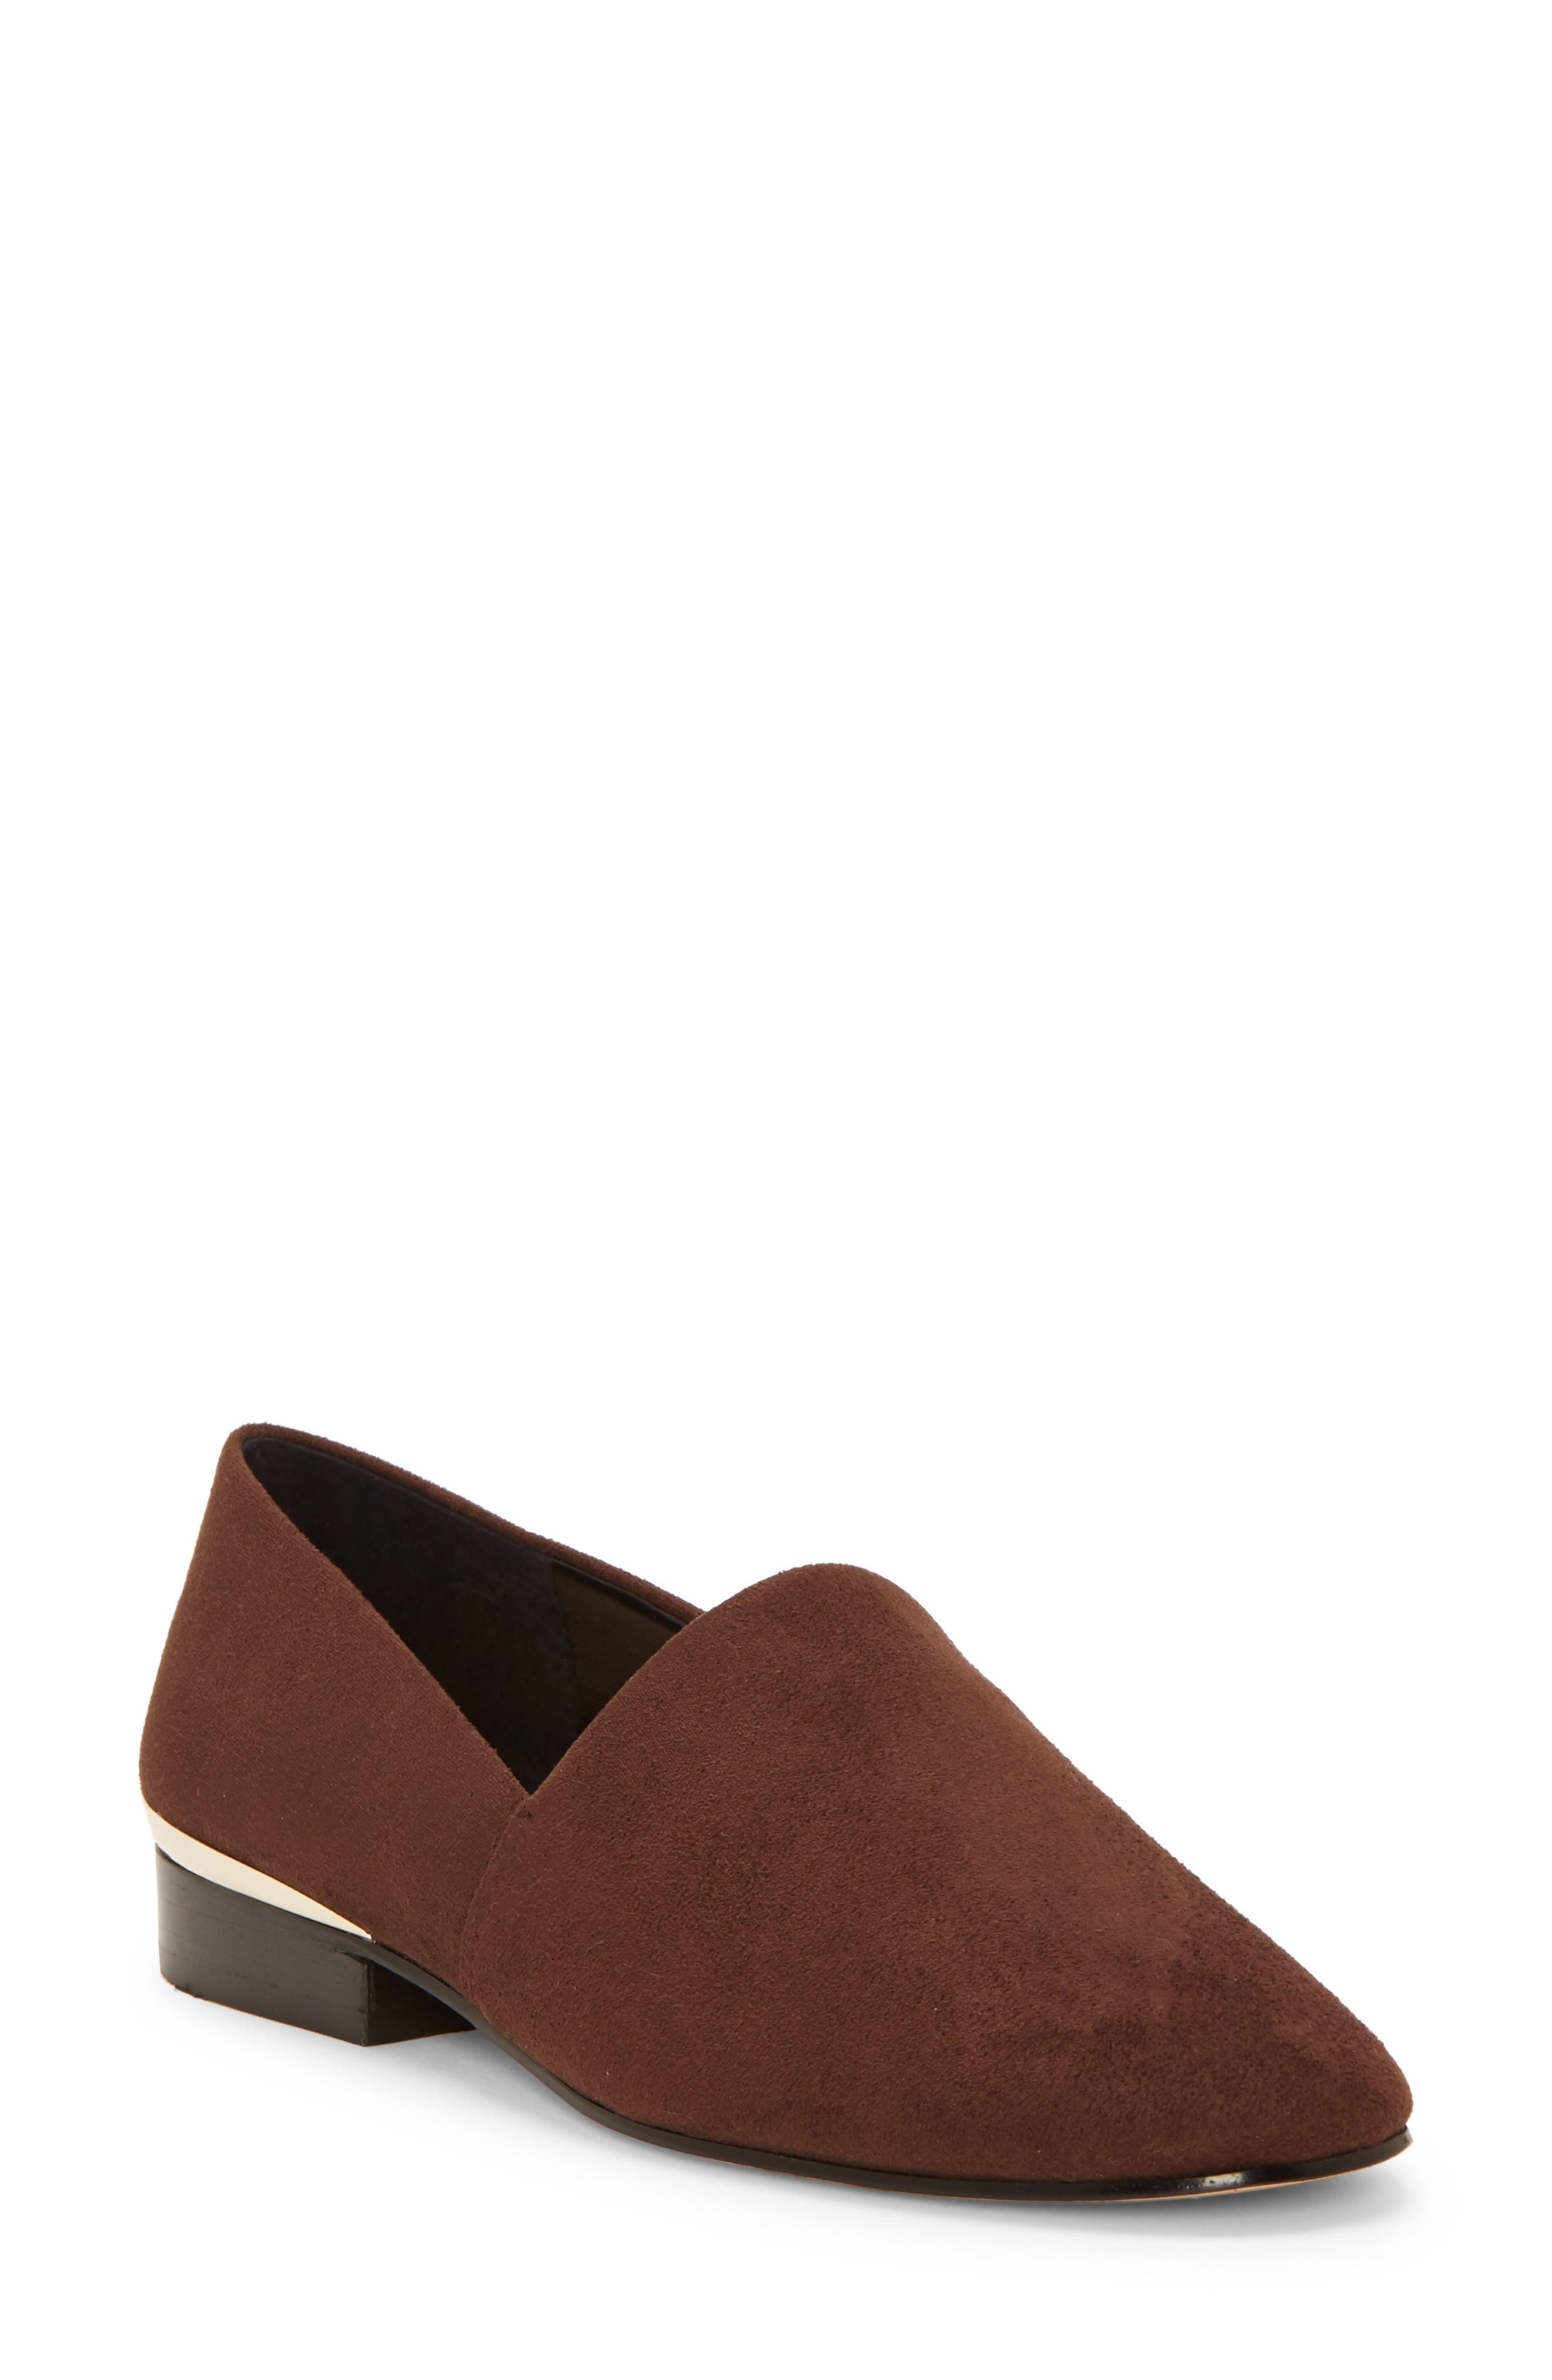 Enzo Angiolini Tagwen Loafer- Brown